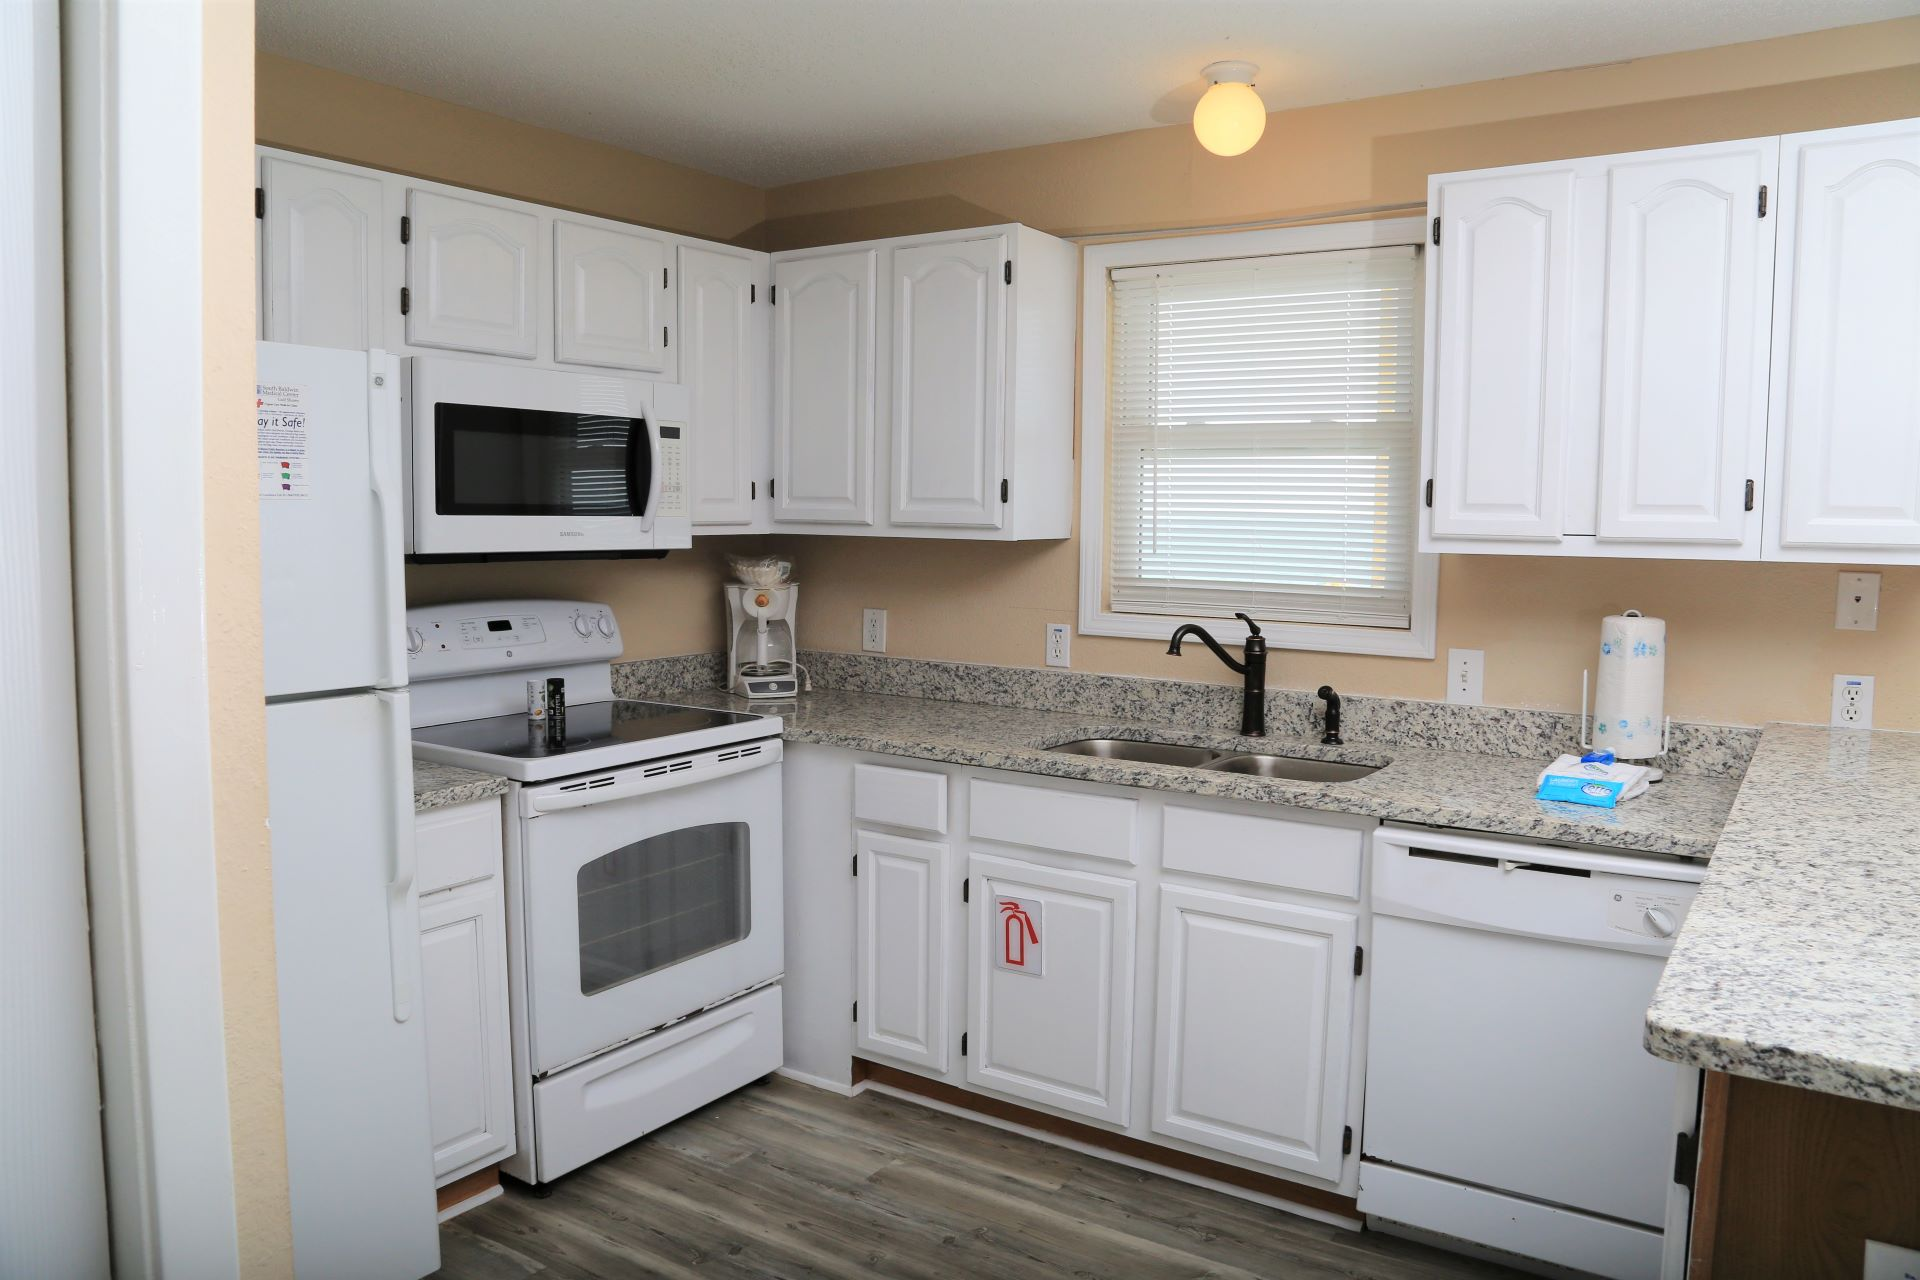 The kitchen includes matching white appliances and is stocke